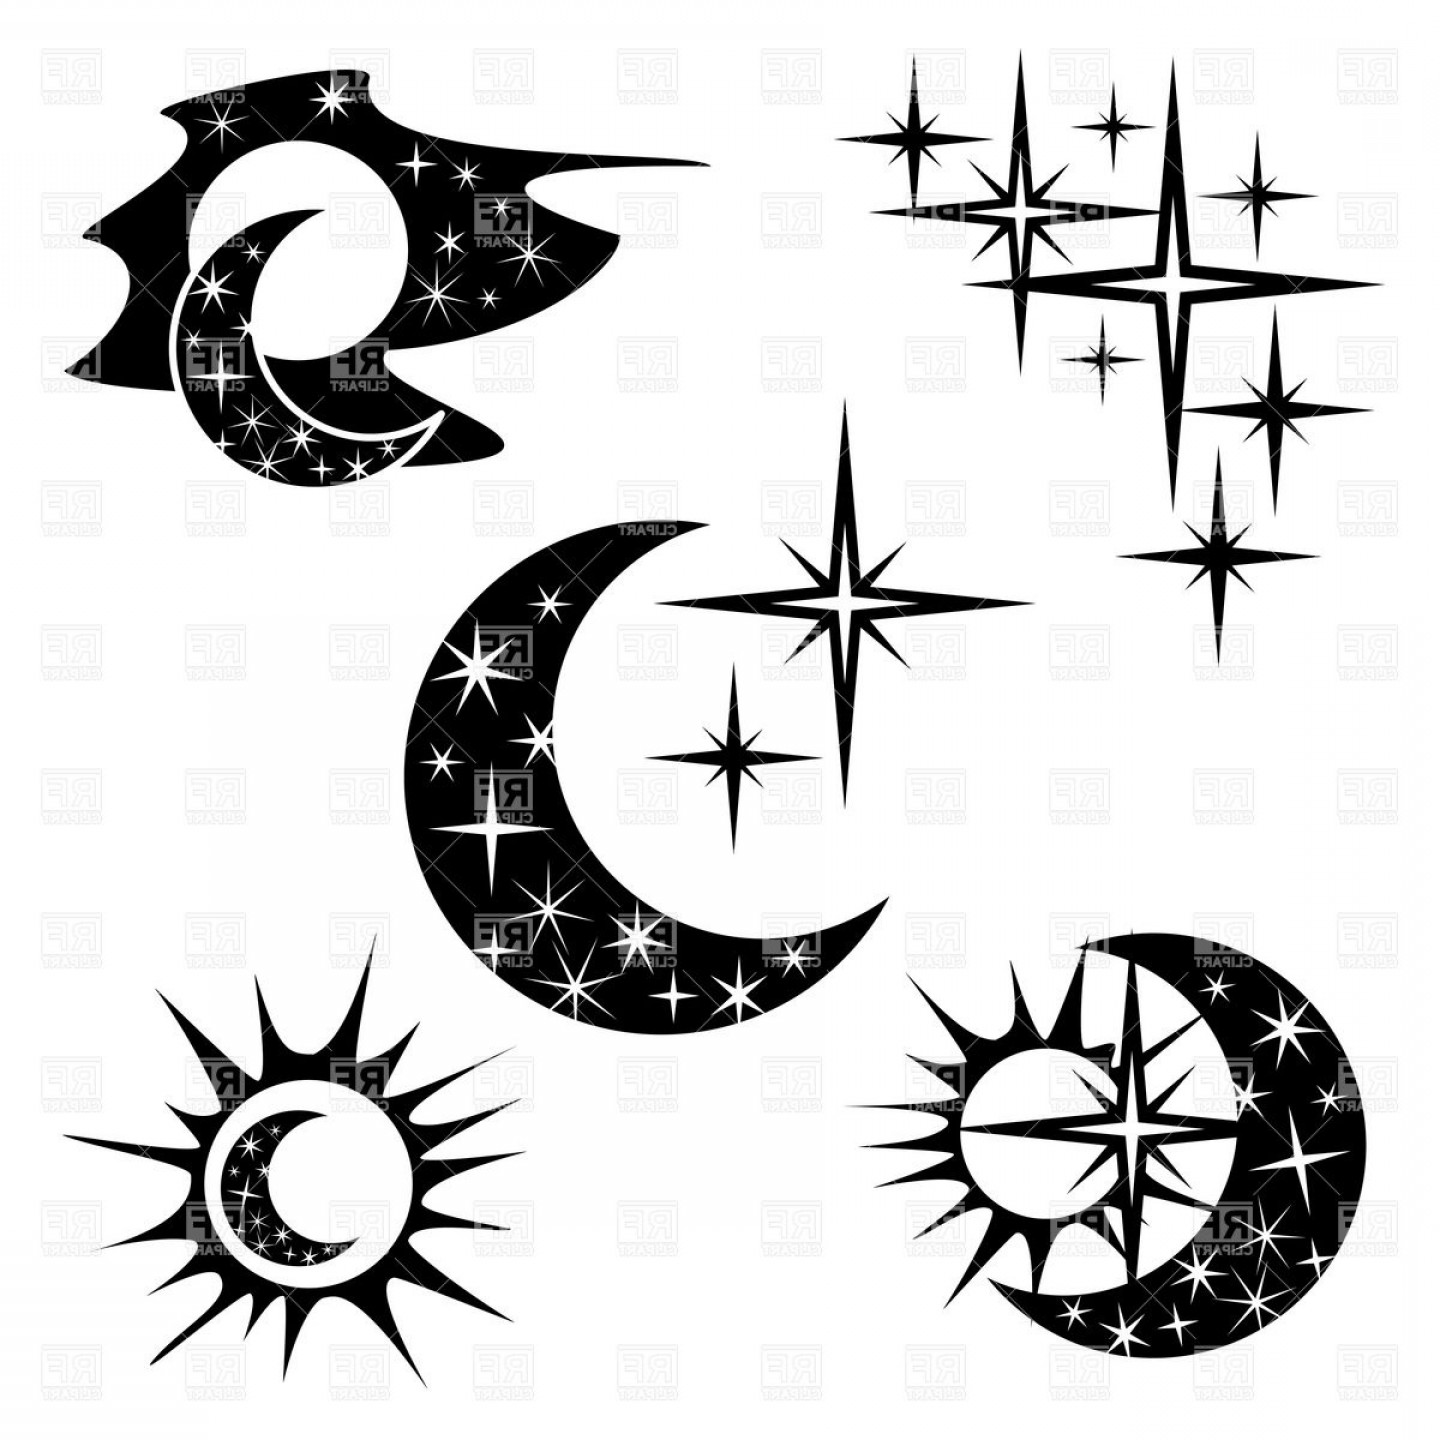 Black and white half moon designs clipart clip art library library Night And Half Moon Crescent With Star Pattern Vector Clipart | SOIDERGI clip art library library